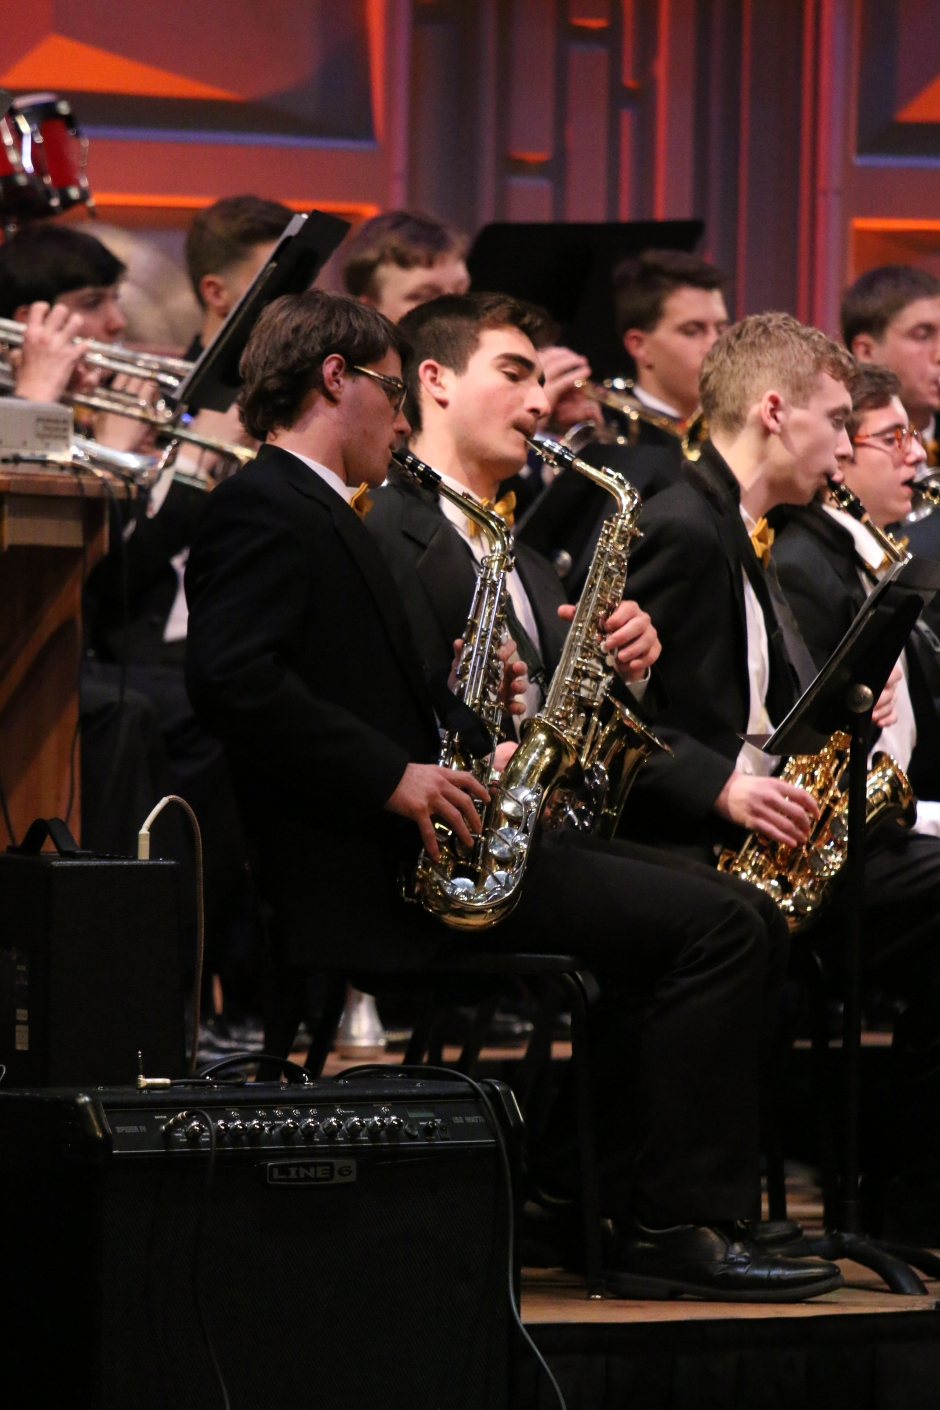 Gold Band's saxophone section harmonizes during the concert.